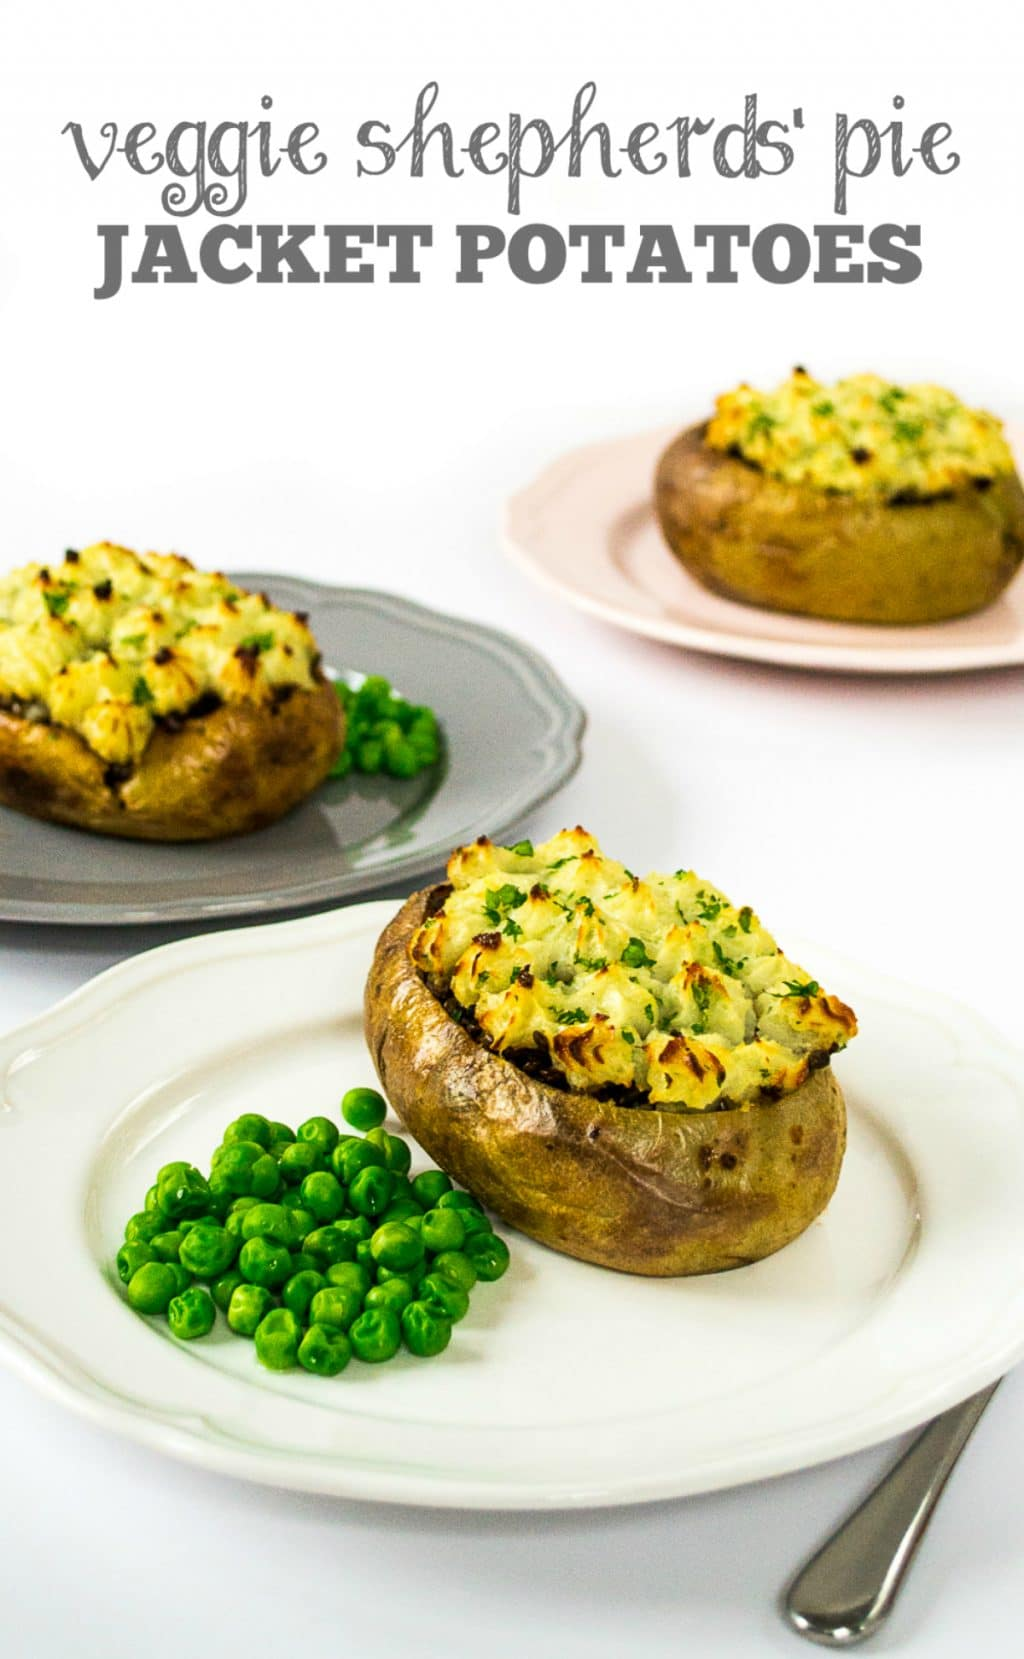 Veggie Shepherds' Pie Jacket Potatoes